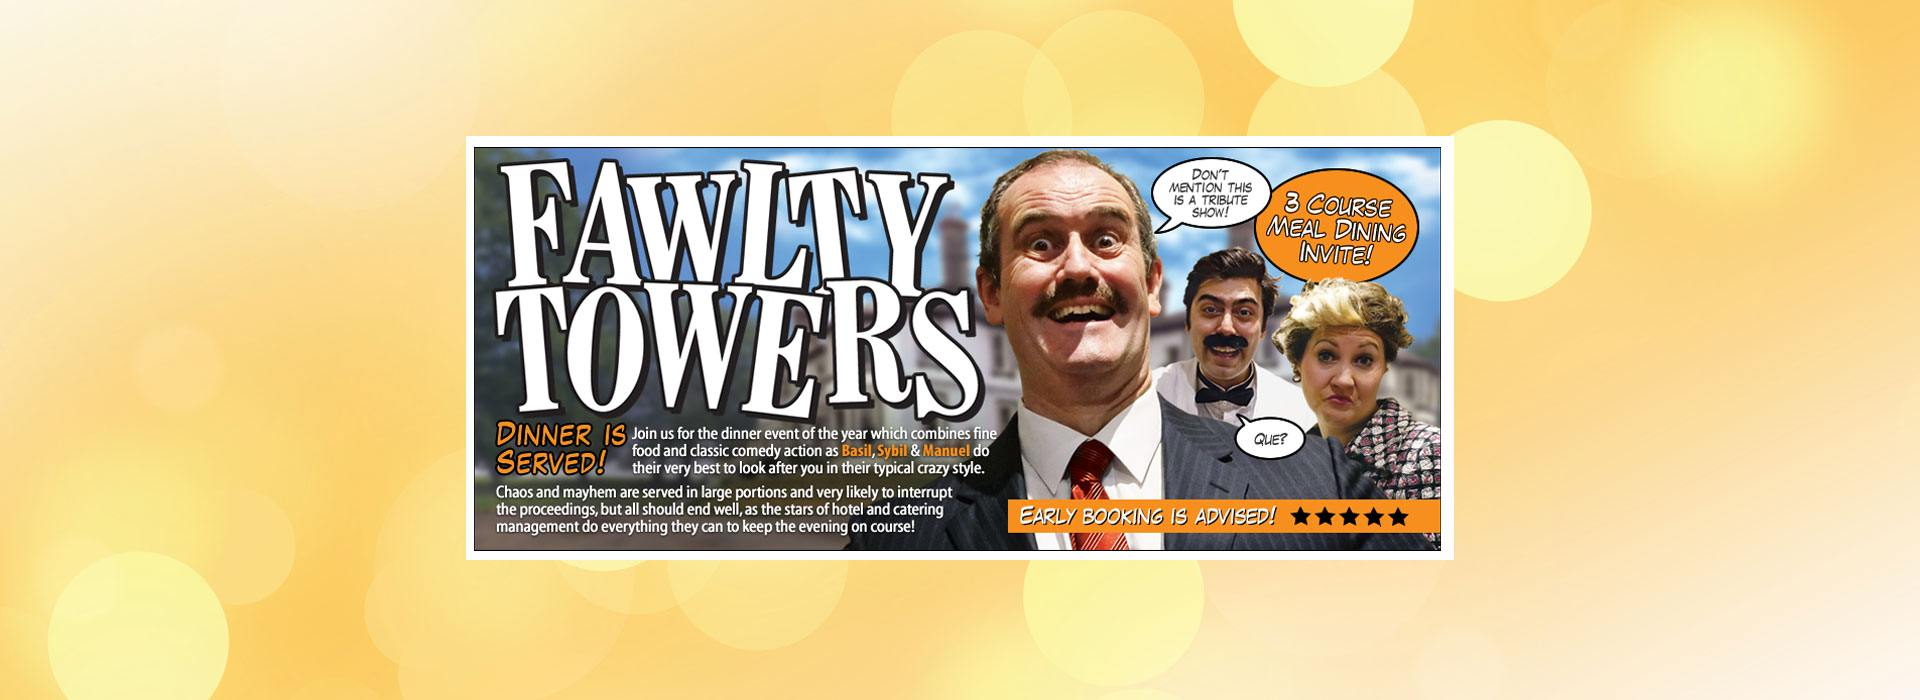 Fawlty Towers Dinner Show 21 07 2018 Comedy Dining